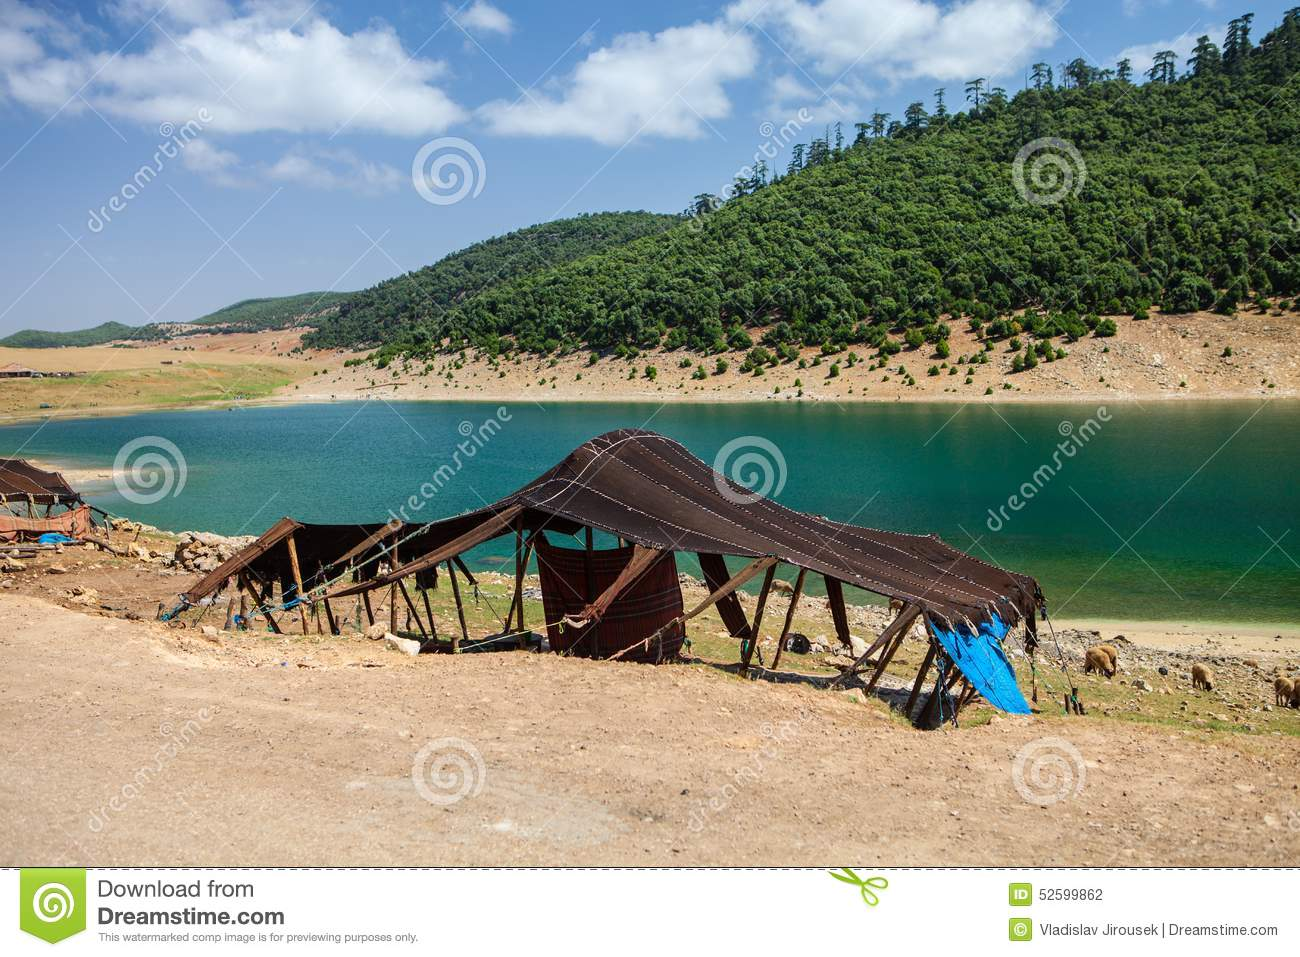 Berber Tent By The Lake, Near Aguelmame, Morocco Stock Photo